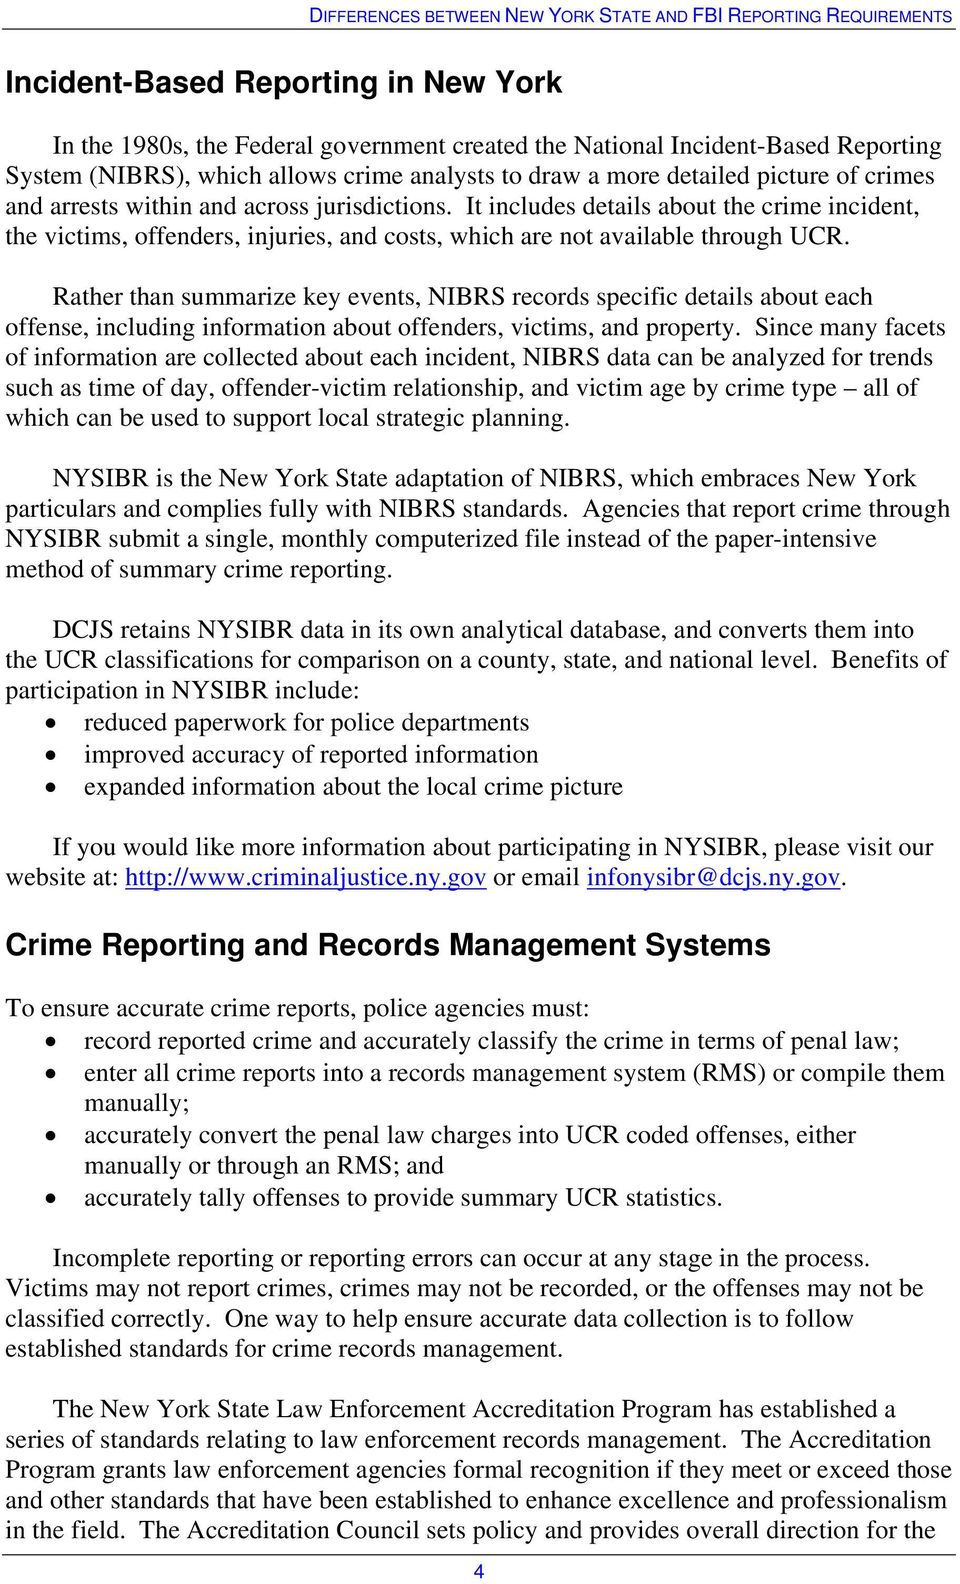 Rather than summarize key events, NIBRS records specific details about each offense, including information about offenders, victims, and property.